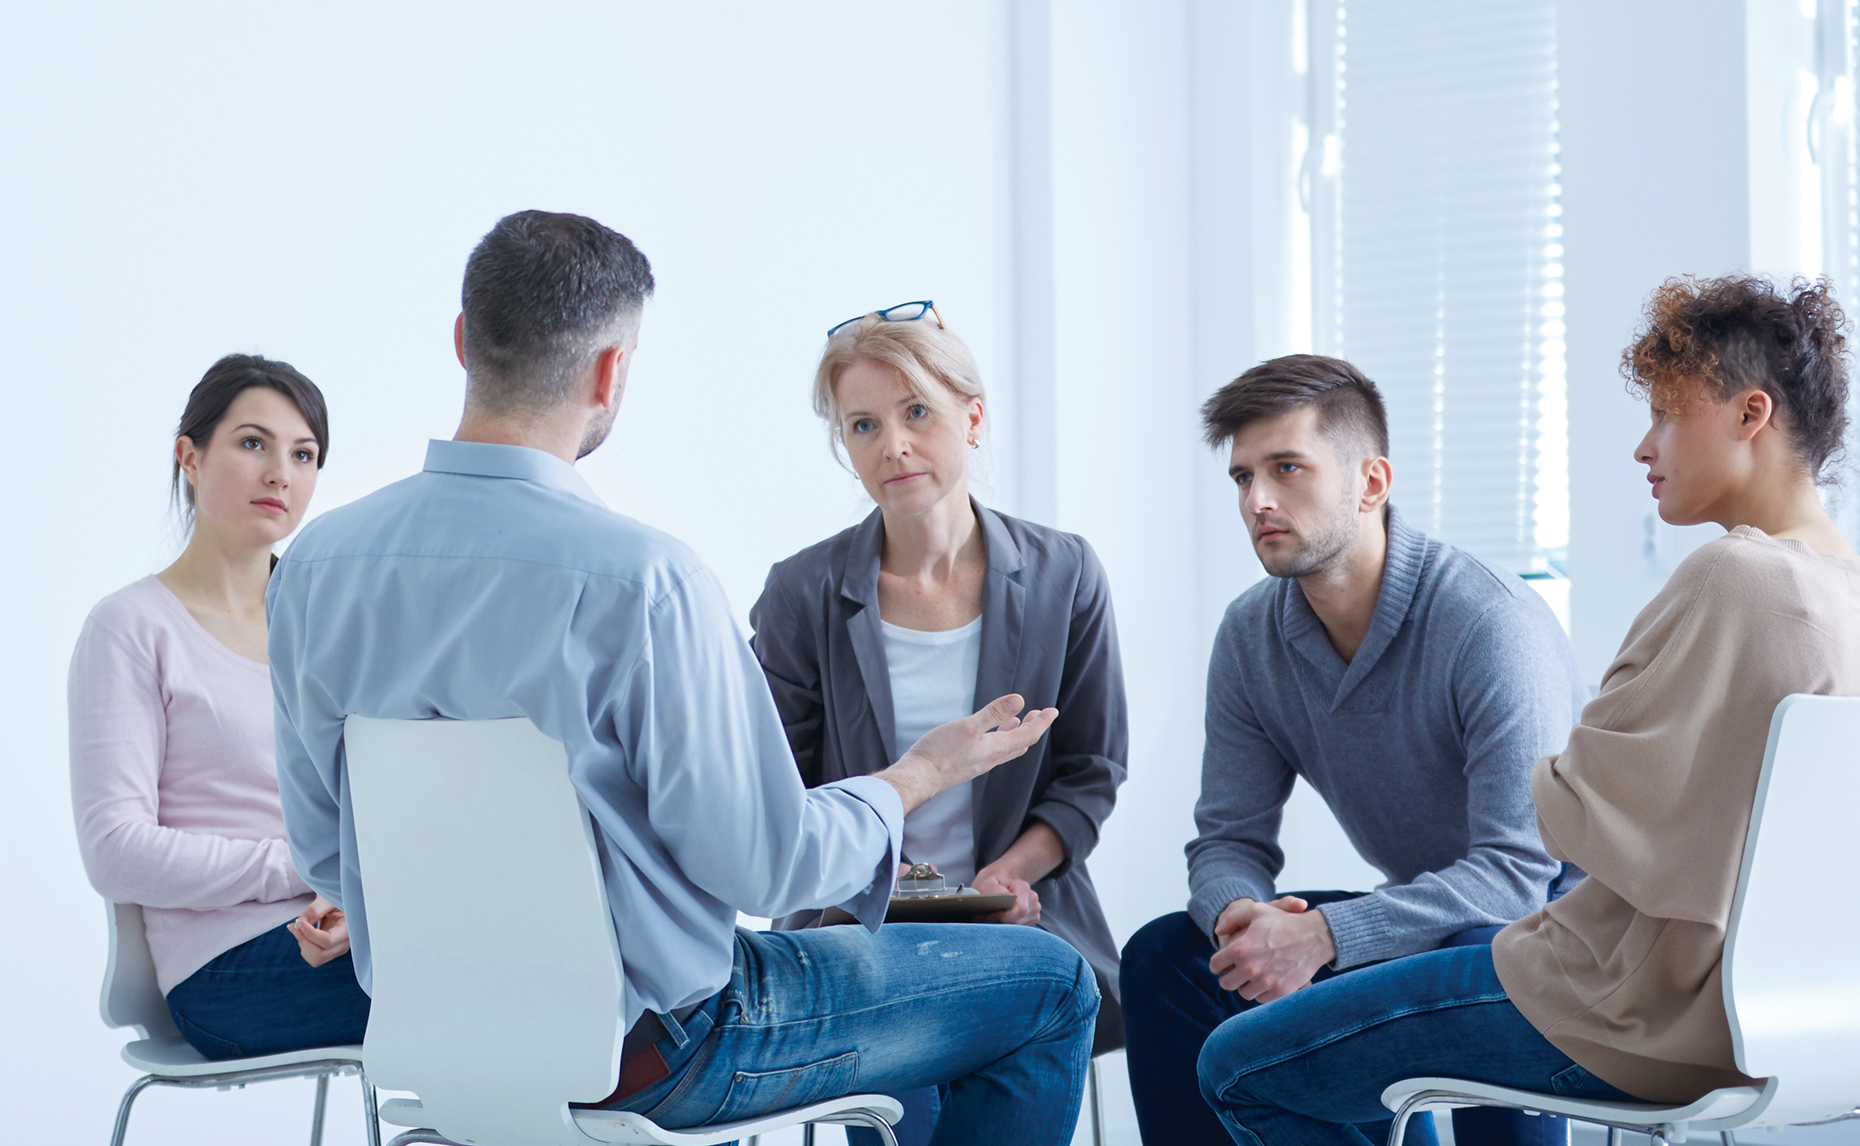 Five white people seated in a group therapy setting